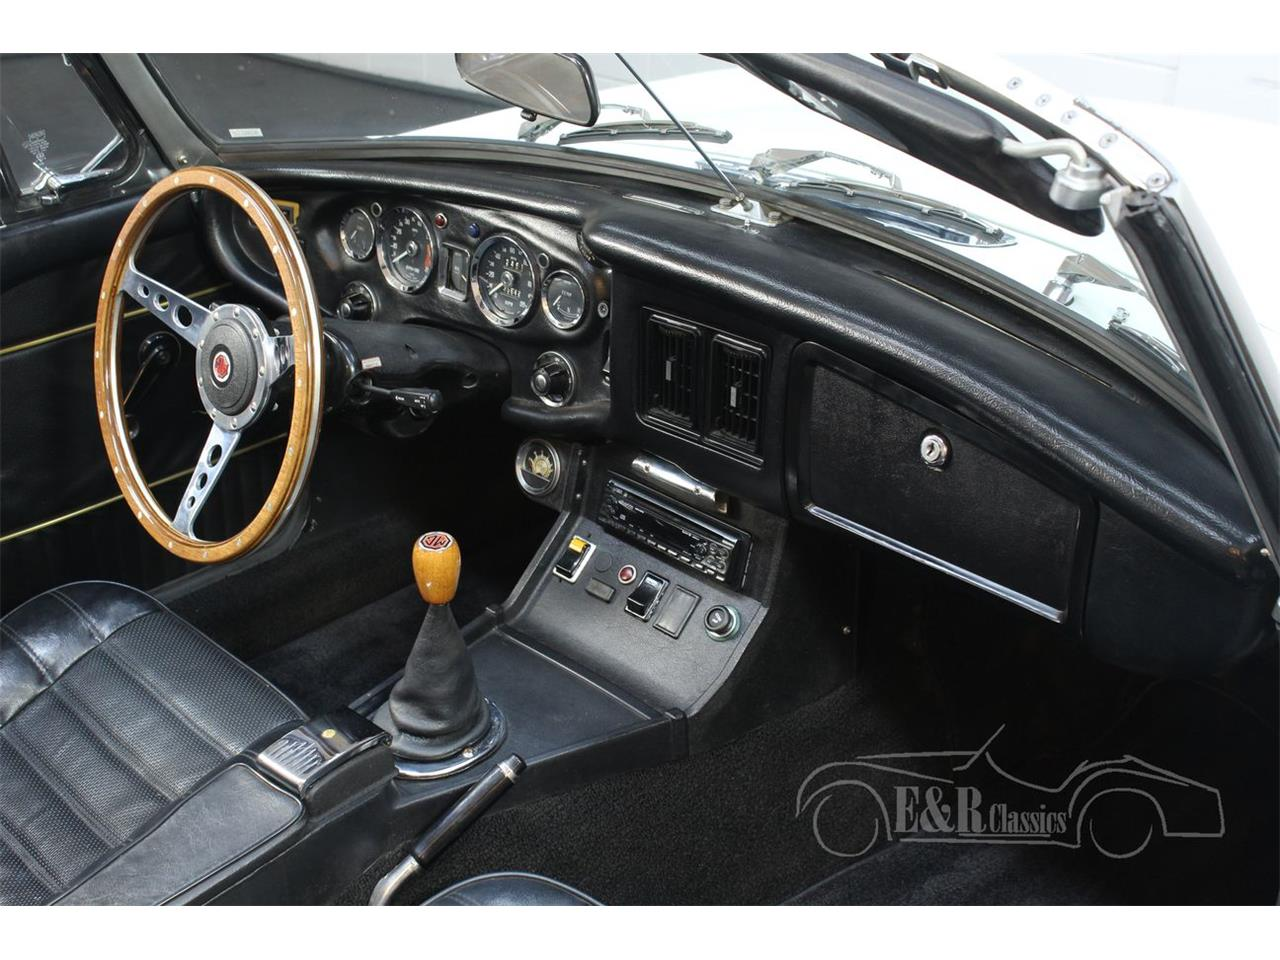 1975 MG MGB (CC-1357480) for sale in Waalwijk, Noord-Brabant